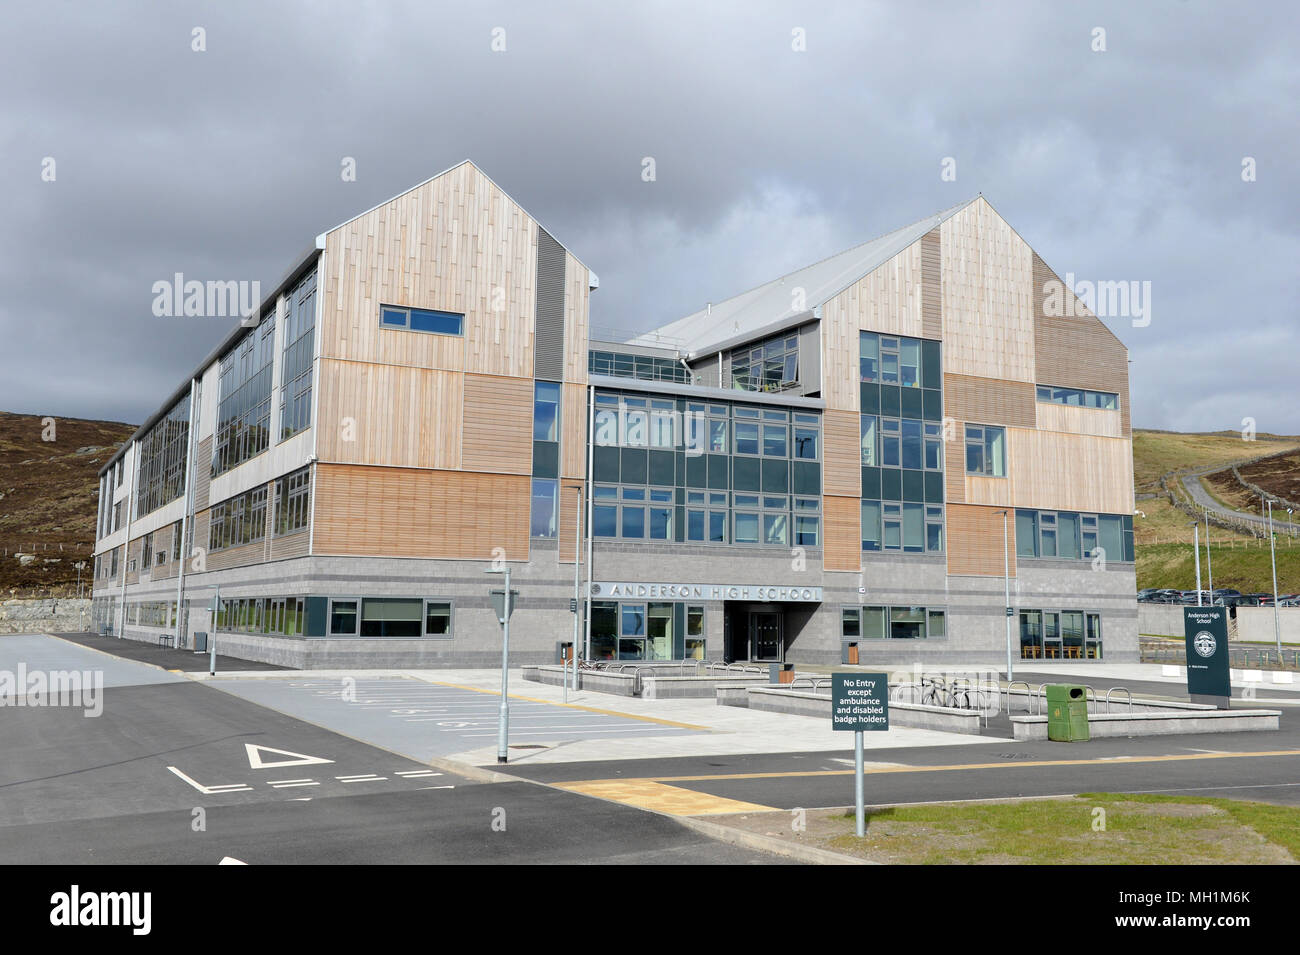 The new Anderson High School in Lerwick Shetland Islands - Stock Image